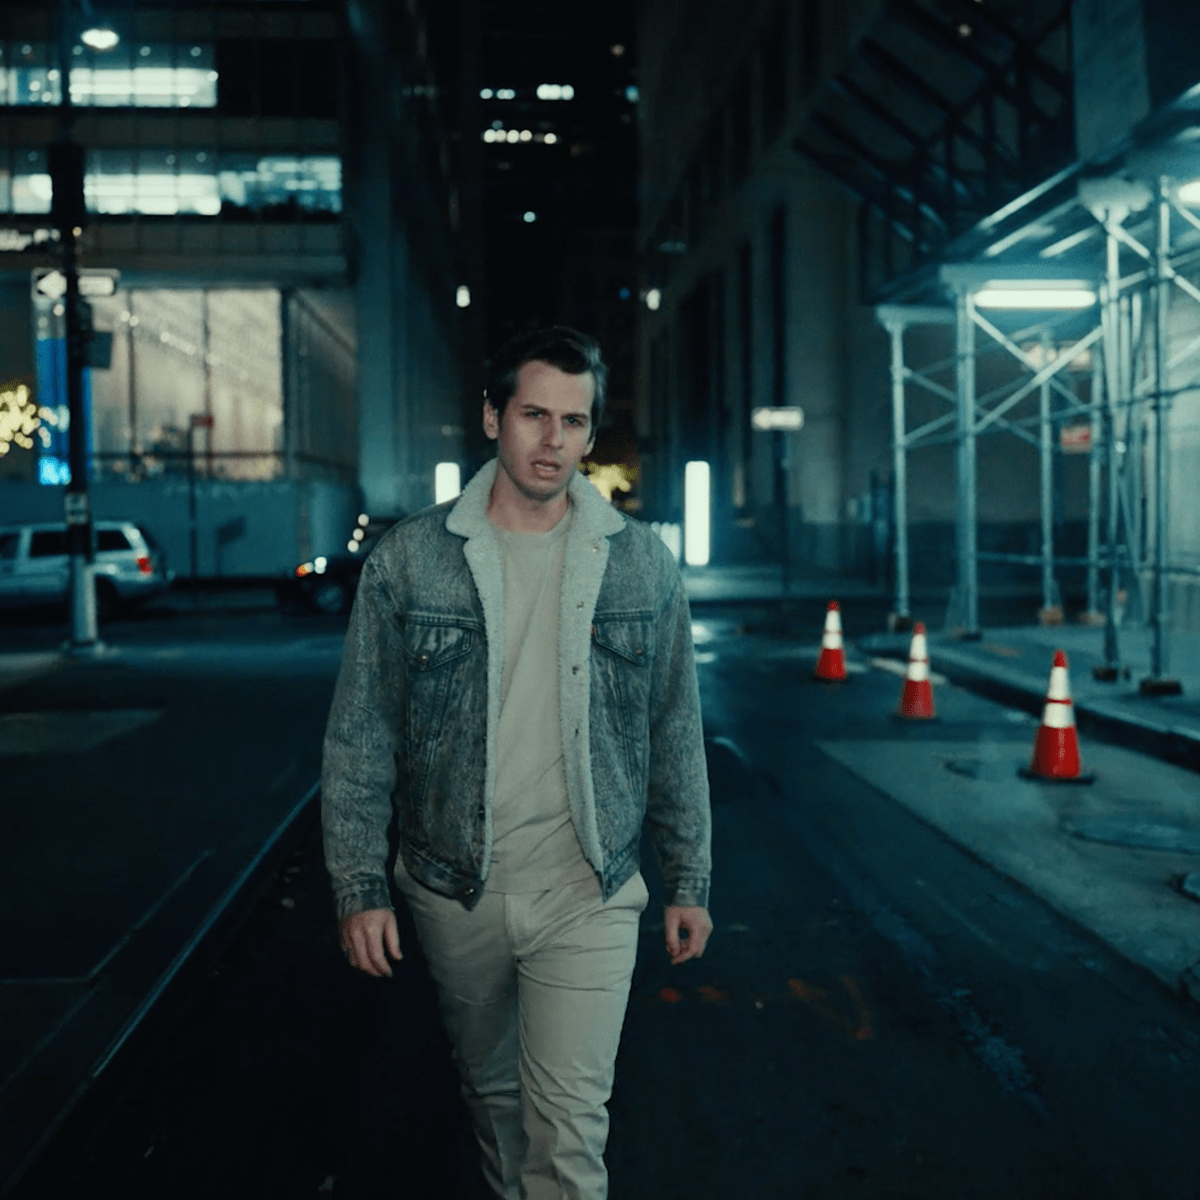 The Knocks feat. Foster The People - All About You (Video)